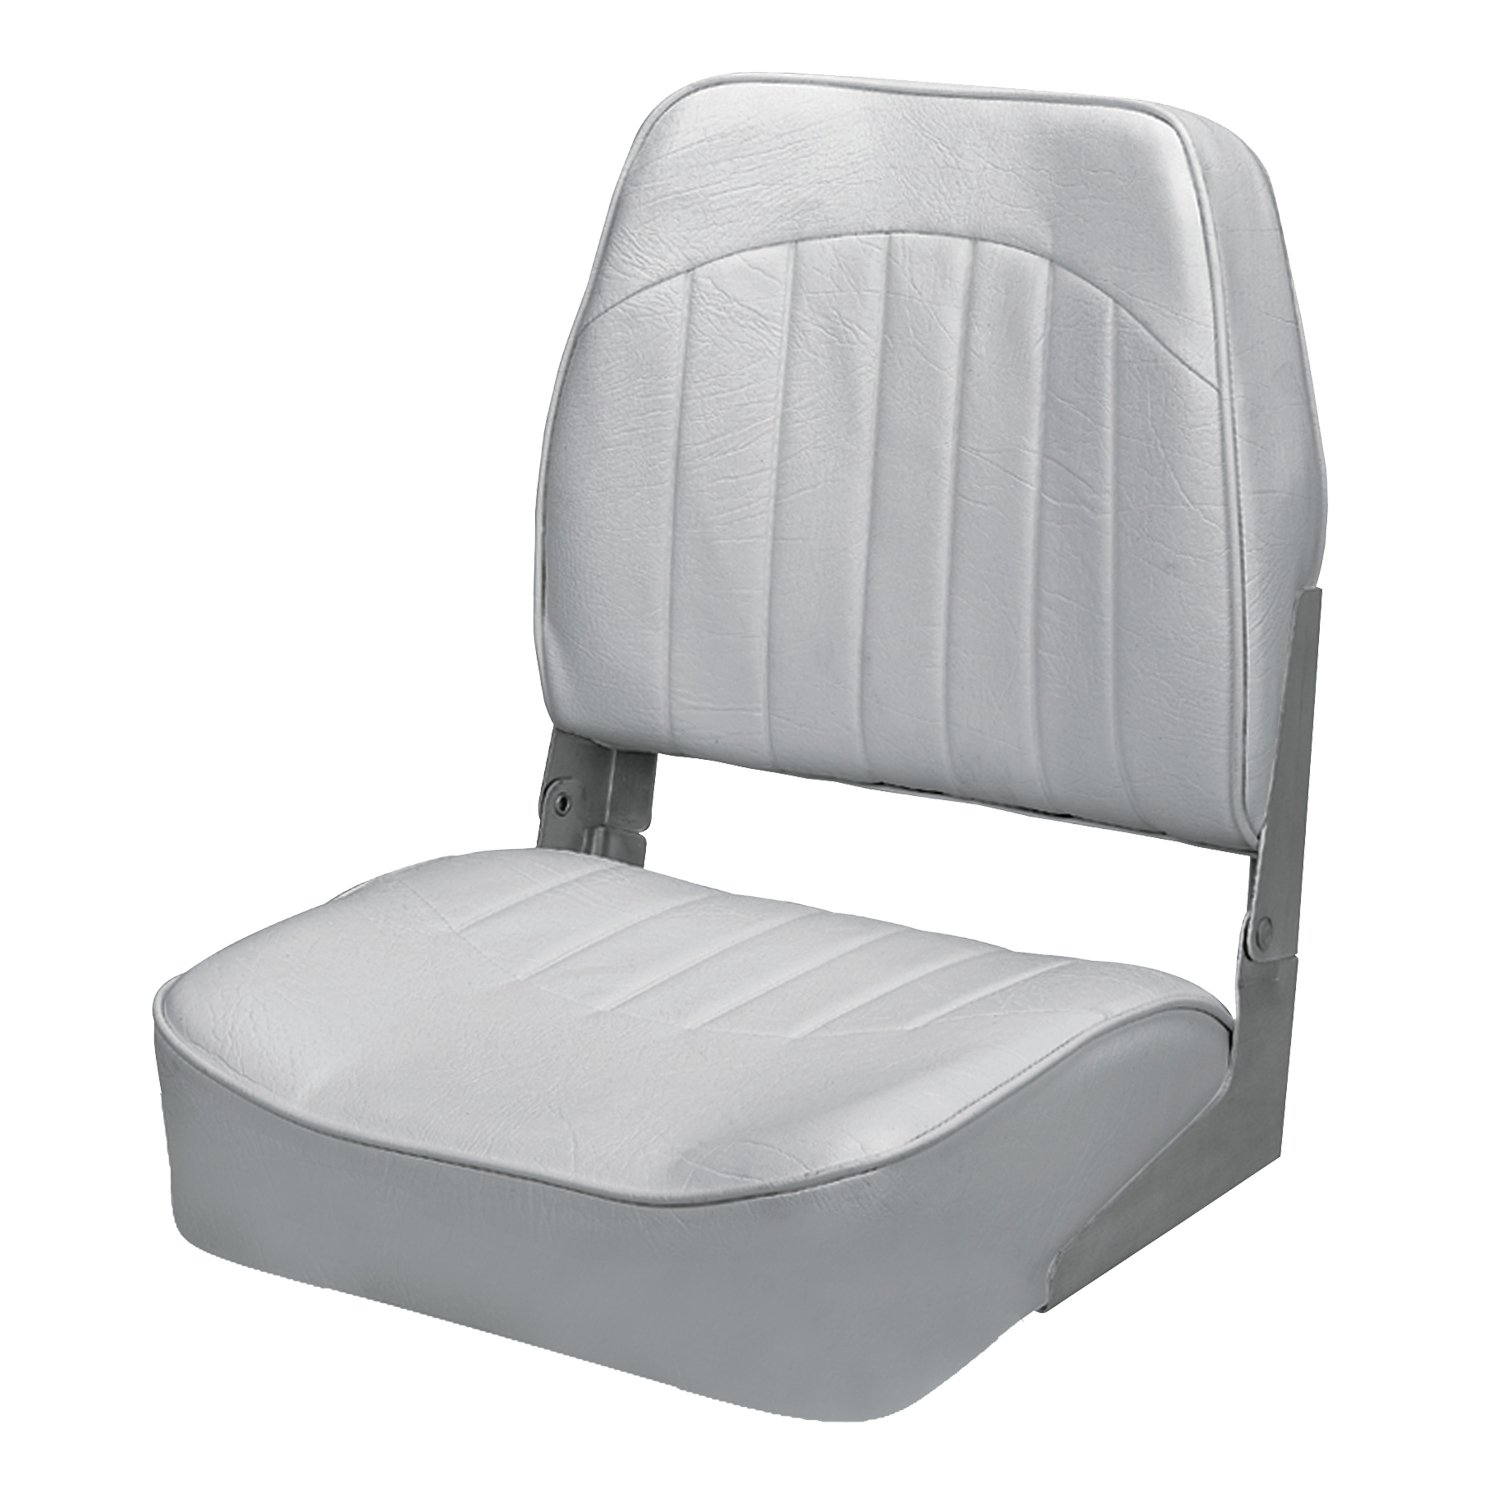 Wise 8WD734PLS-717 Low Back Boat Seat, Grey by Wise (Image #1)